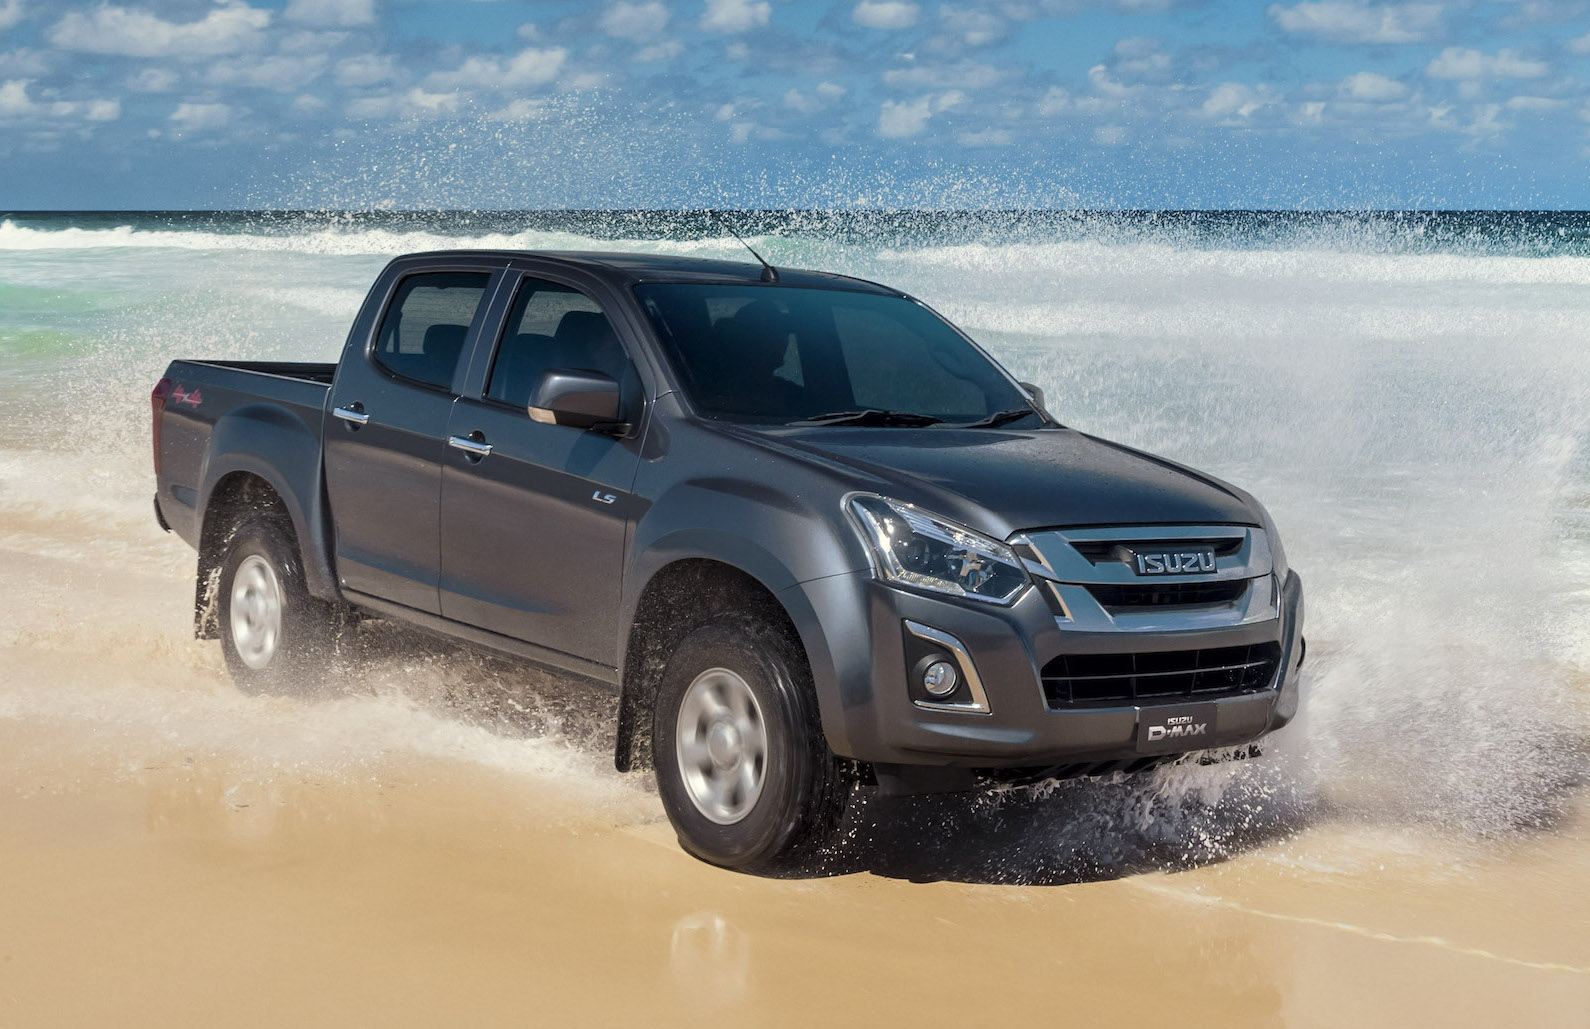 2017 isuzu d max arrives gets 6spd touchscreen more torque performancedrive. Black Bedroom Furniture Sets. Home Design Ideas